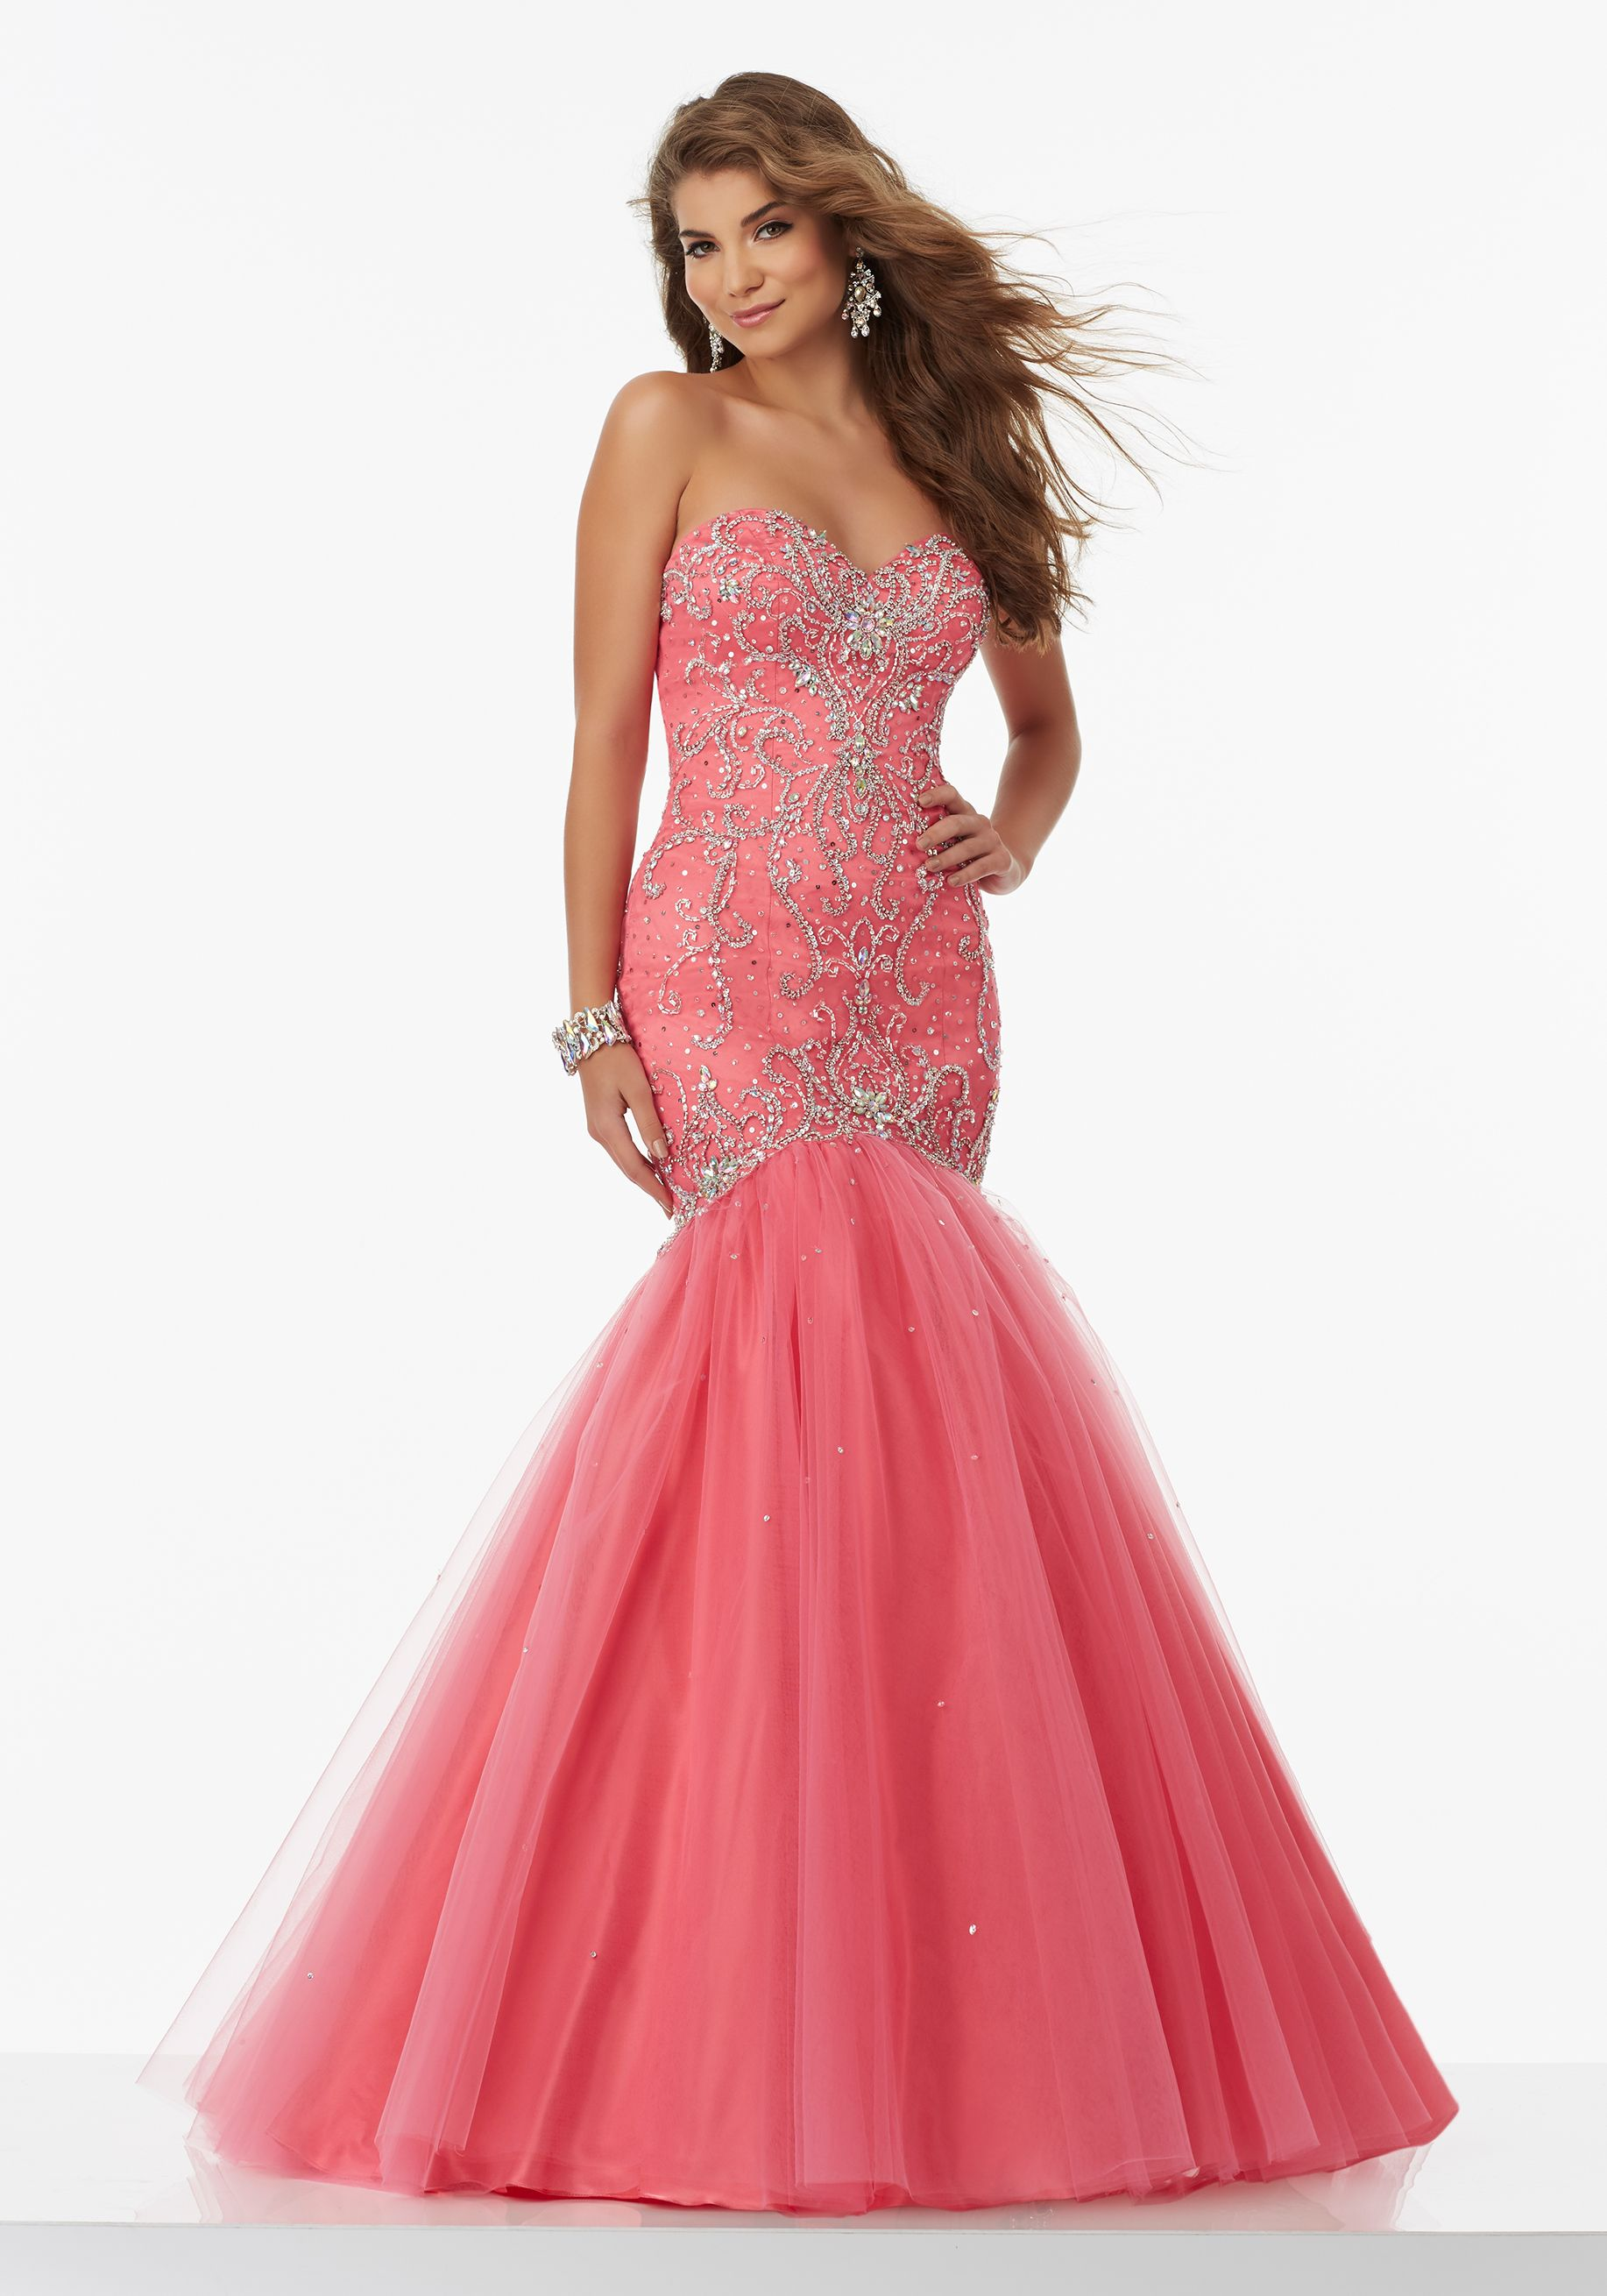 Inticately Beaded Tulle Mermaid Prom Dress with Sweetheart Neckline ...